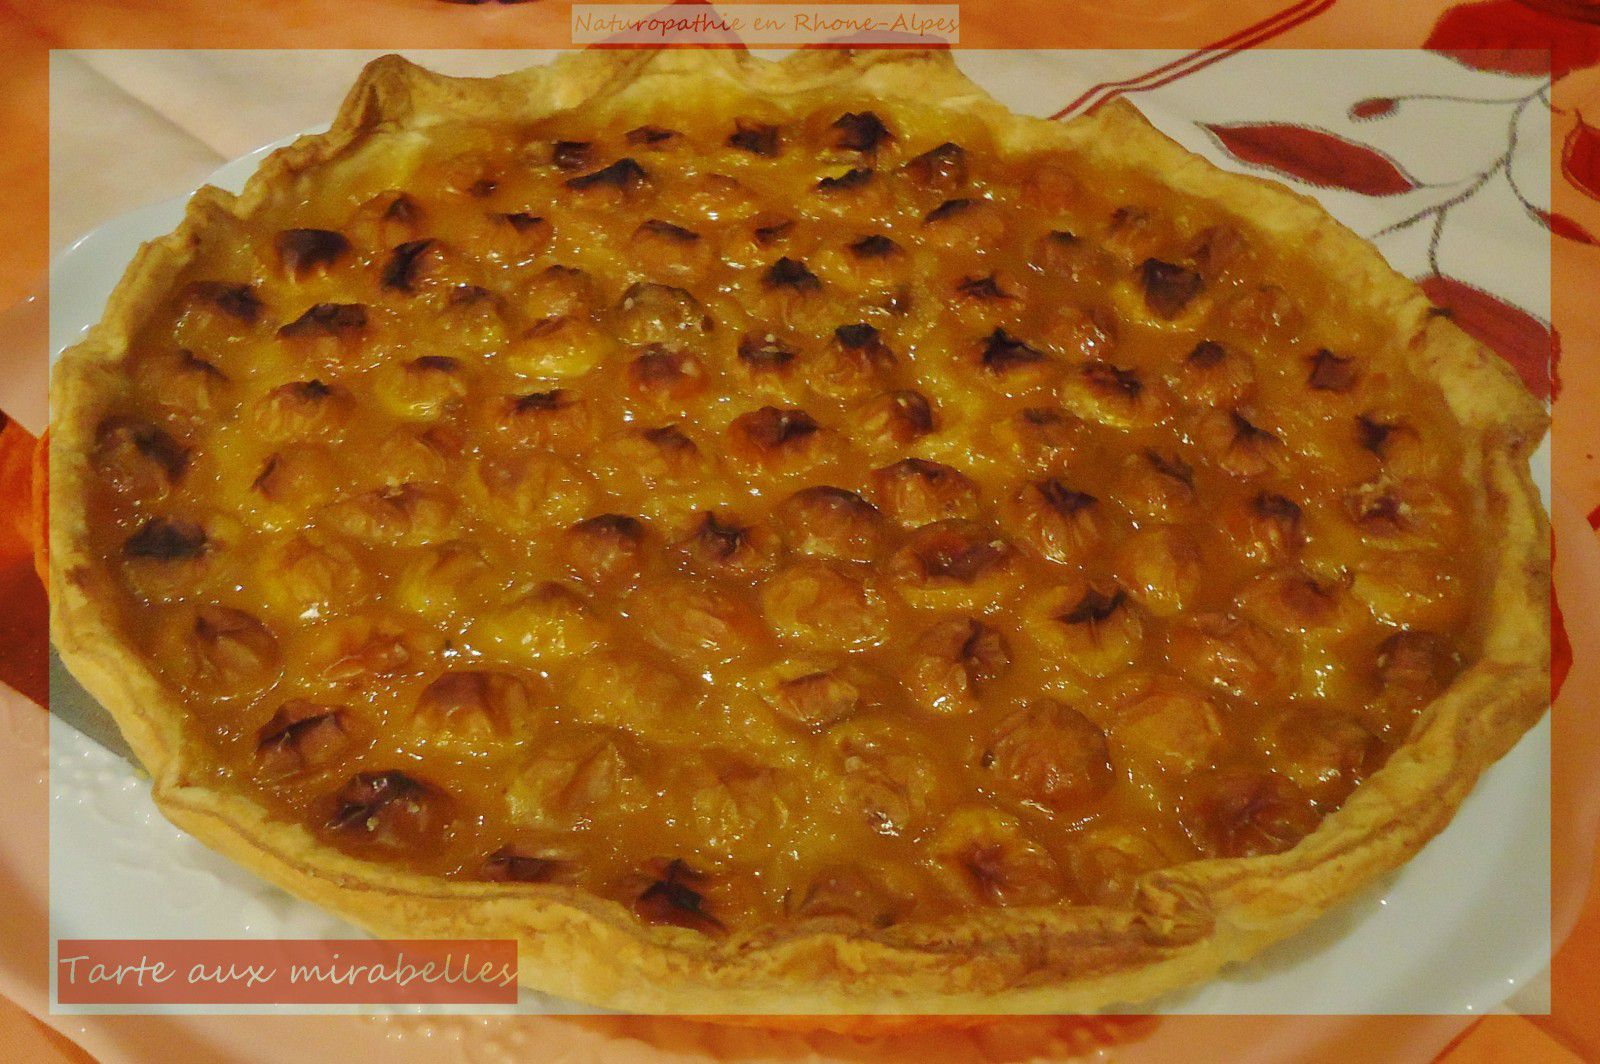 recette tarte aux mirabelles menus quilibr s au quotidien et naturopathie. Black Bedroom Furniture Sets. Home Design Ideas